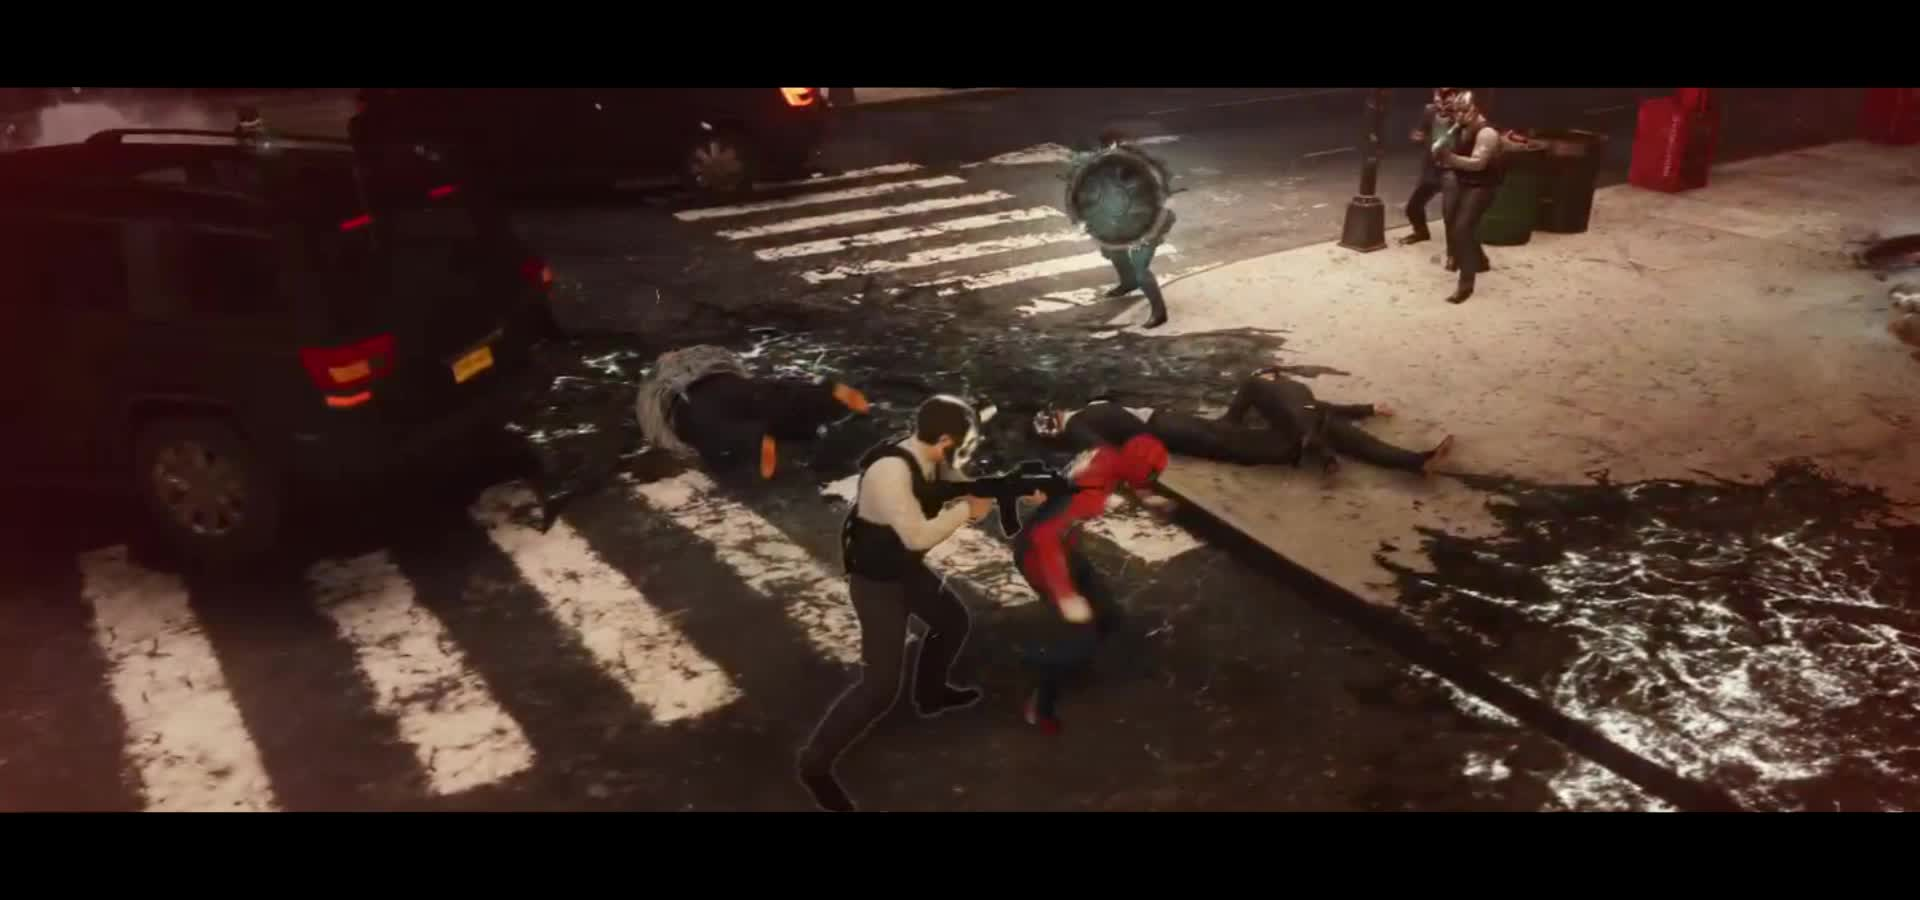 #ps4share, falconbox, funny, games, gaming, marvel, mcu, playstation 4, ps4, ps4share, spider-man, Spider-Man human shield GIFs